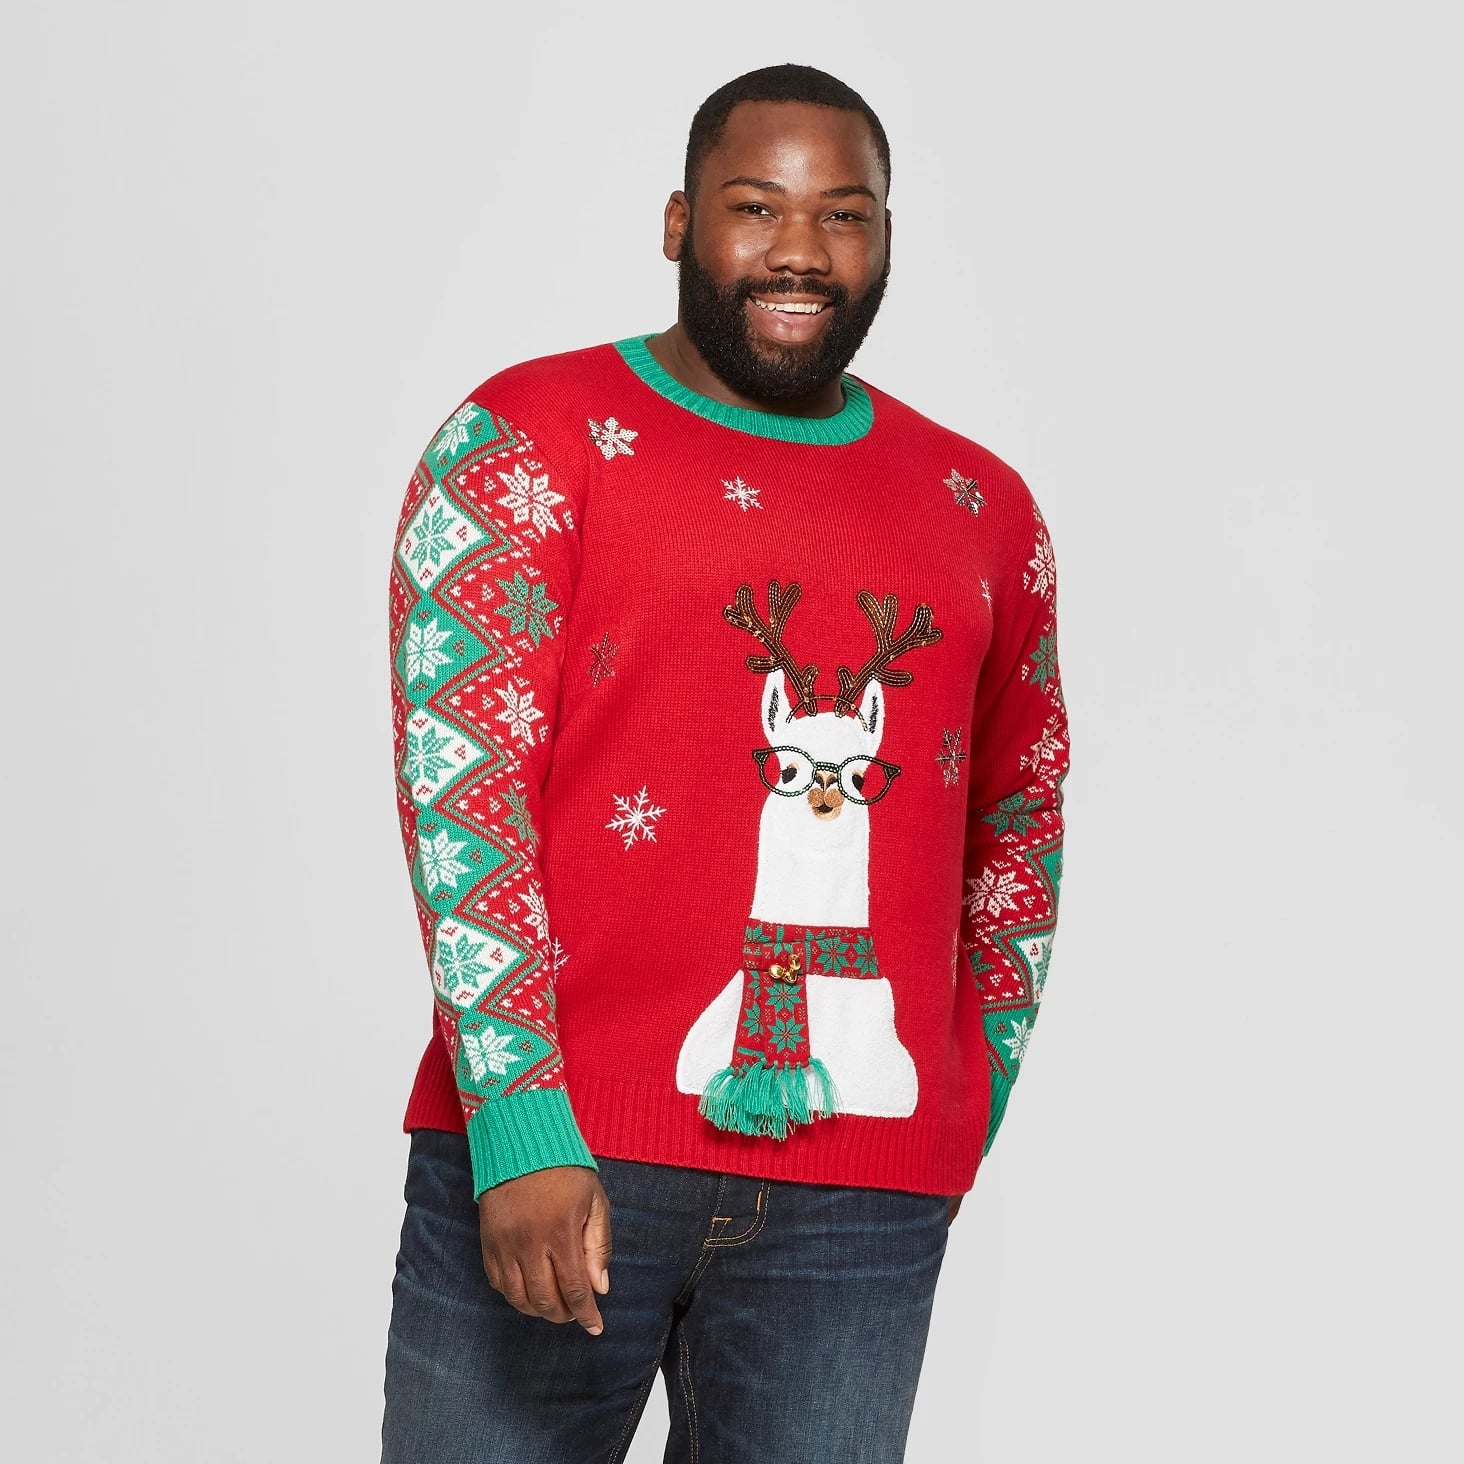 Adult Plus Size Llama Family Ugly Christmas Sweater Target Is Selling The Best Ugly Sweaters We Ve Seen And We Re Pretty Sure That S A Wasted Santa Right There Popsugar Family Photo